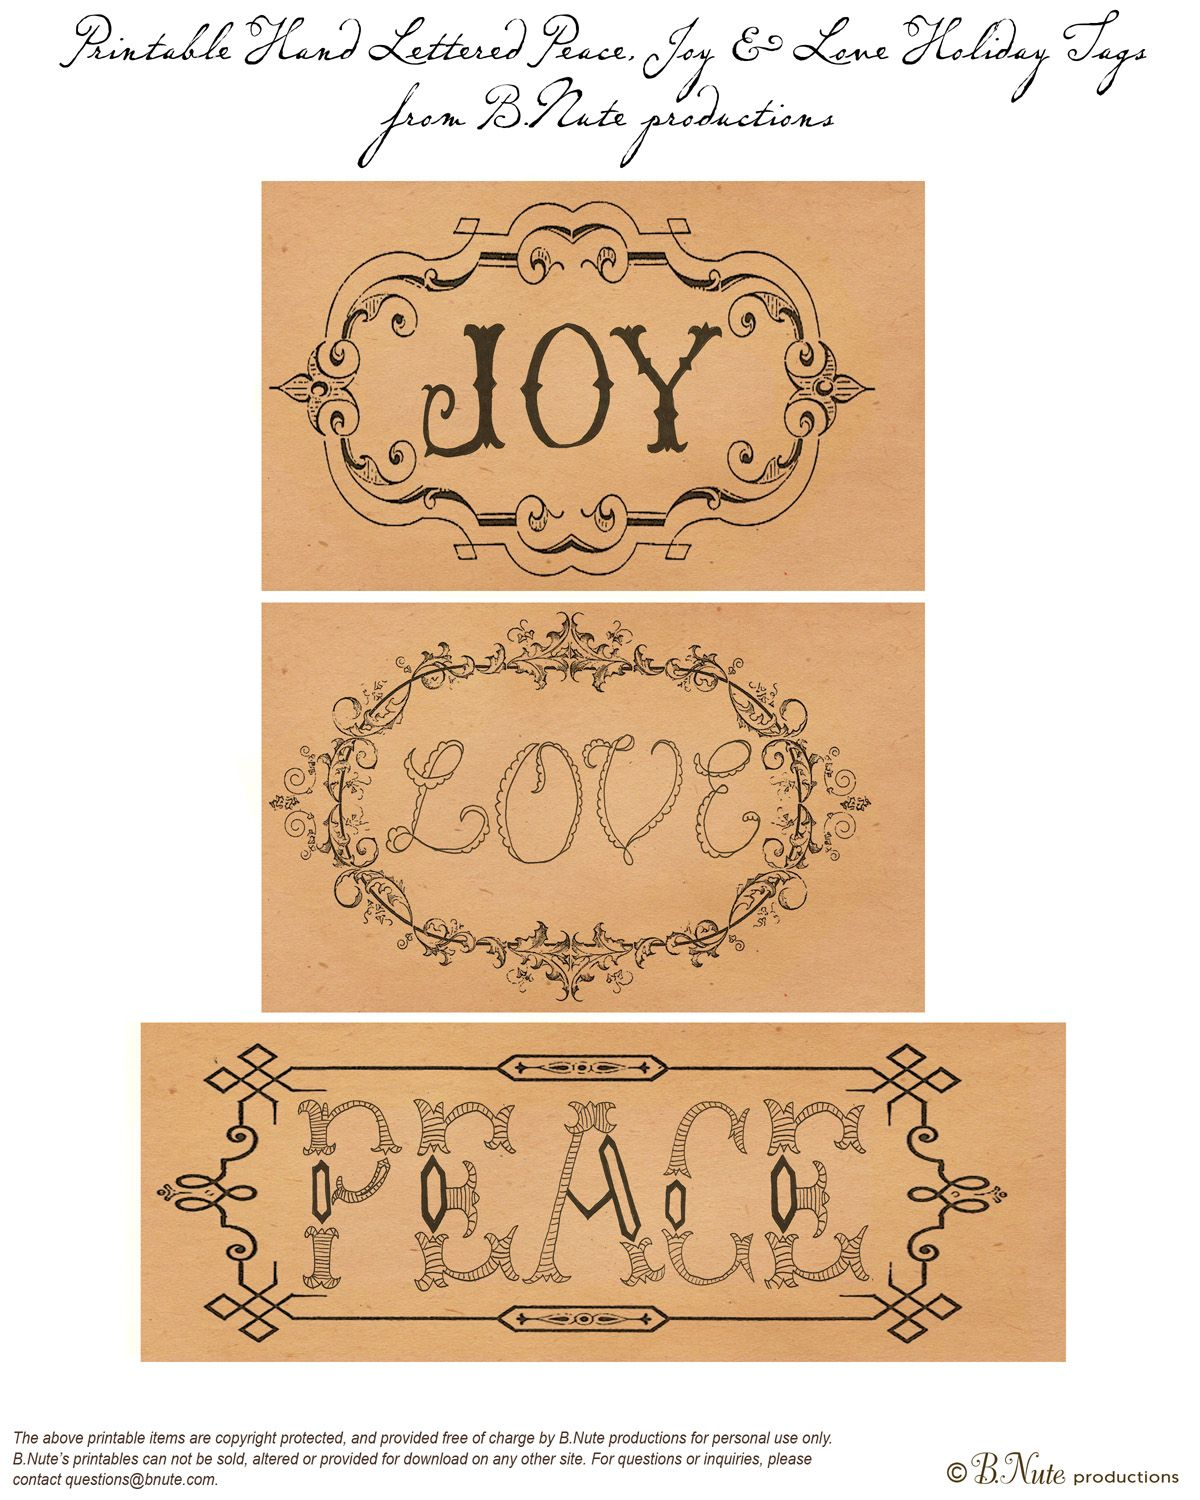 Bnute Productions Free Printable Holiday Tags Peace Love Amp Joy Hand Letterered